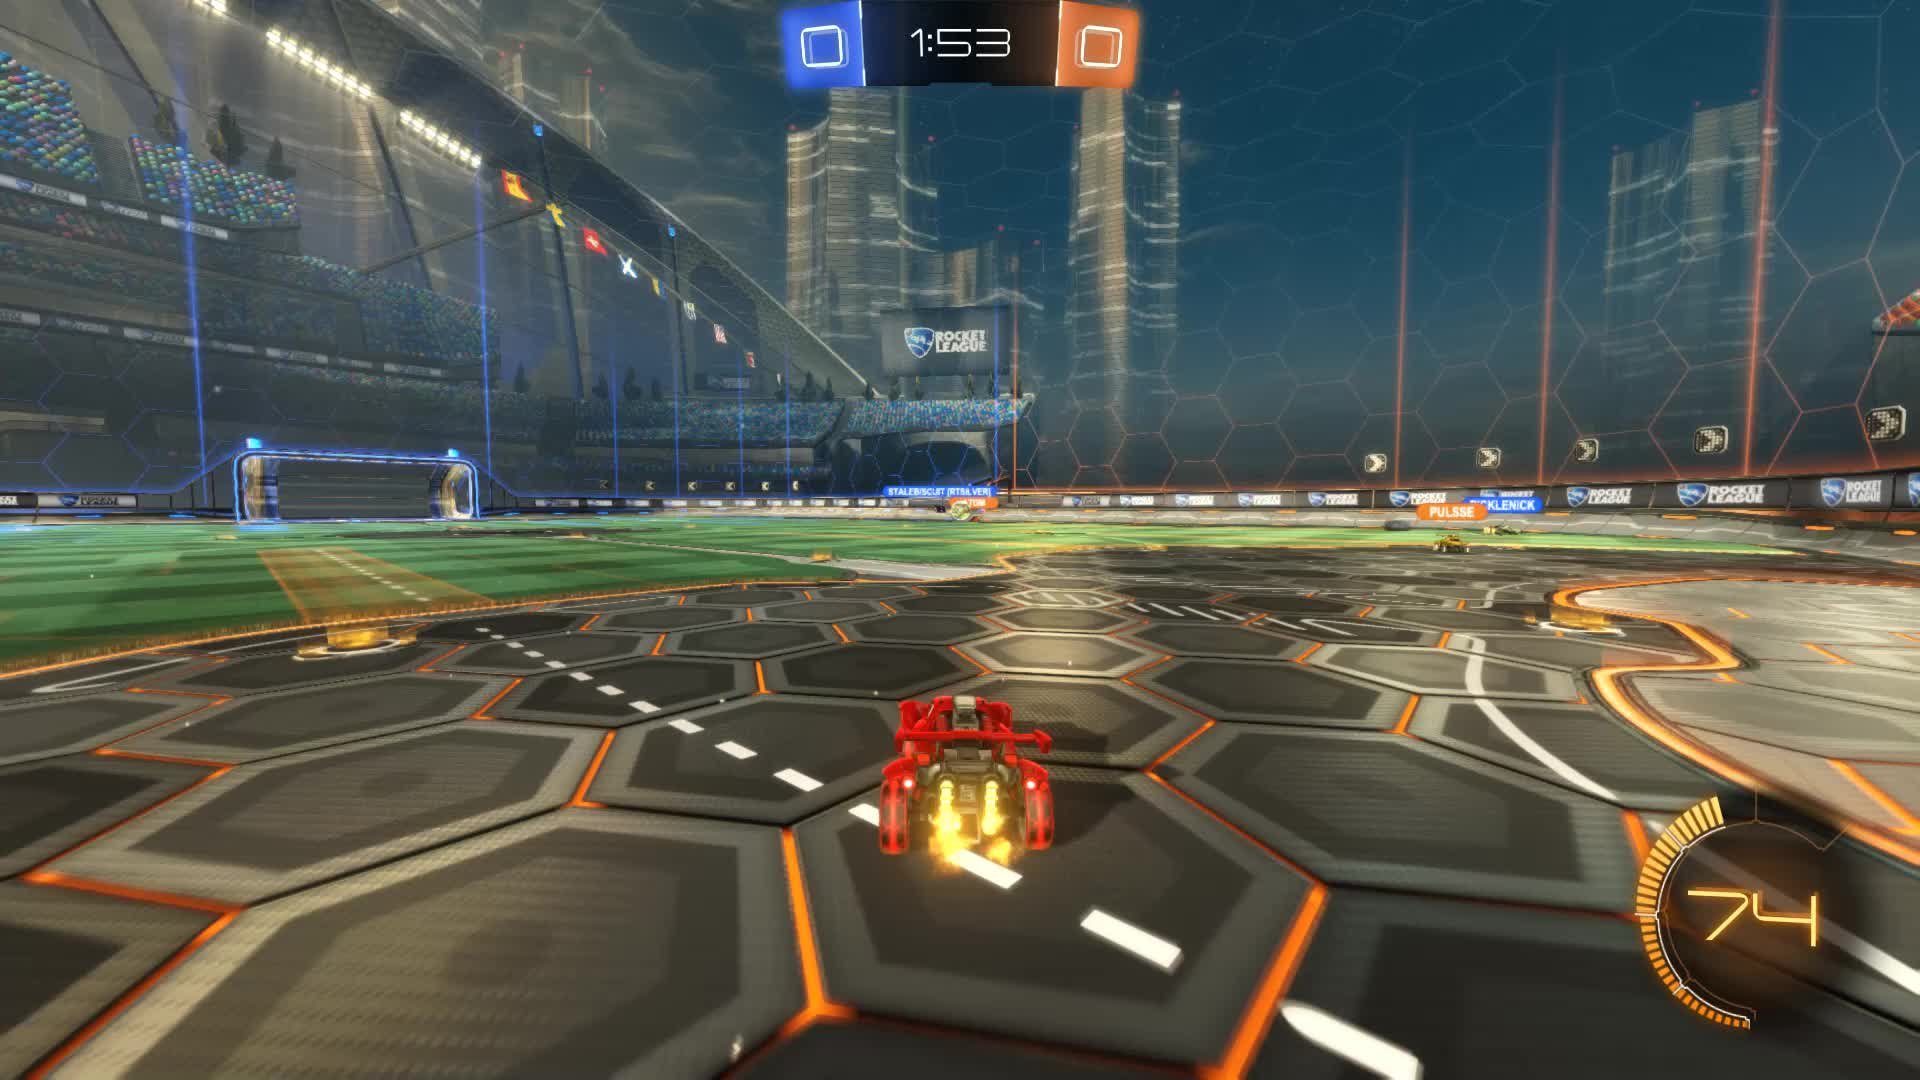 Gif Your Game, GifYourGame, Goal, Jus10, Rocket League, RocketLeague, ⏱️ Neat little team play GIFs